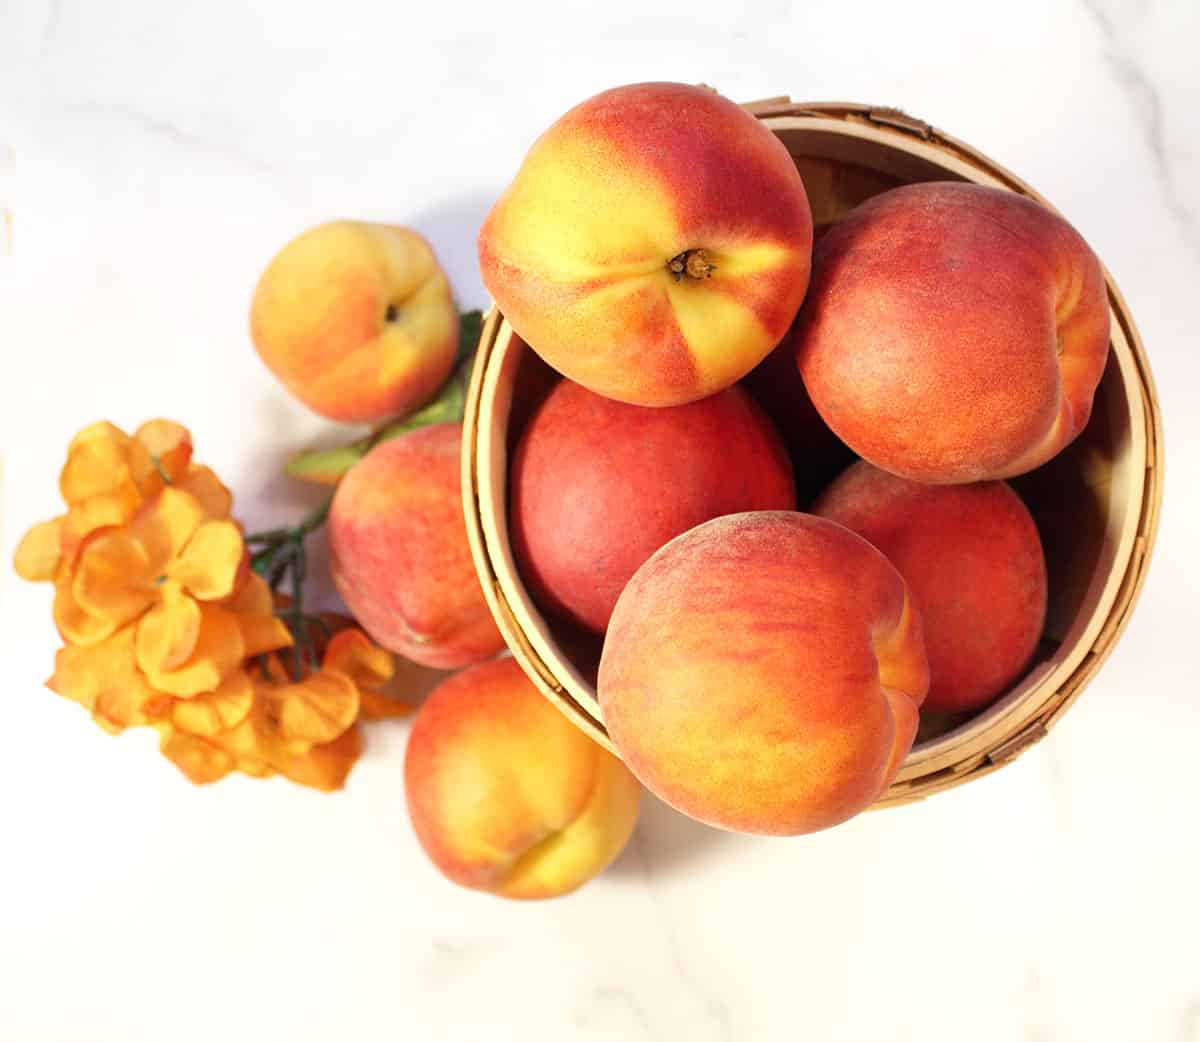 Peaches in a basket on white marble table.